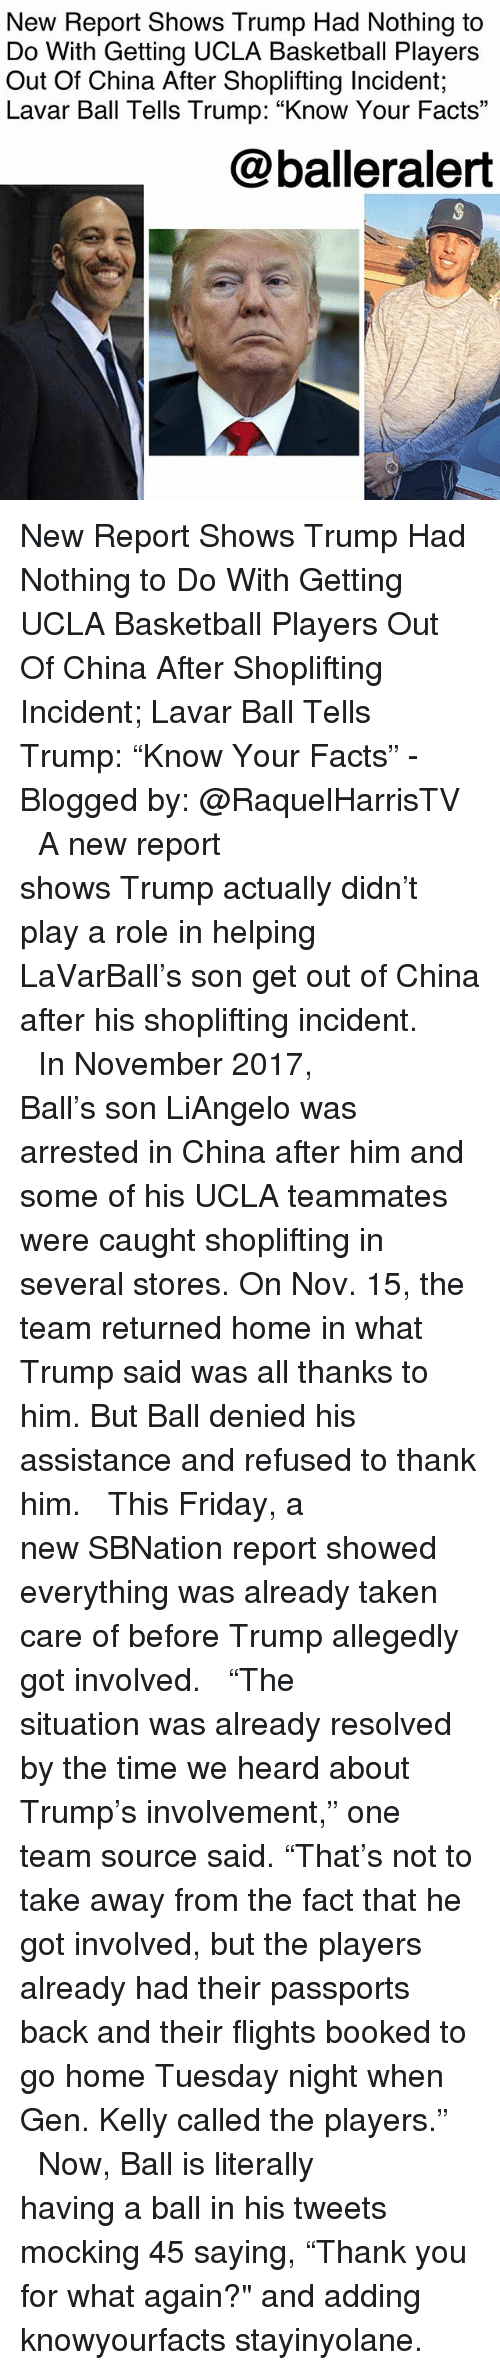 """Basketball, Facts, and Friday: New Report Shows Trump Had Nothing to  Do With Getting UCLA Basketball Players  Out Of China After Shoplifting Incident;  Lavar Ball Tells Trump: """"Know Your Facts""""  @balleralert New Report Shows Trump Had Nothing to Do With Getting UCLA Basketball Players Out Of China After Shoplifting Incident; Lavar Ball Tells Trump: """"Know Your Facts"""" - Blogged by: @RaquelHarrisTV ⠀⠀⠀⠀⠀⠀⠀⠀⠀ ⠀⠀⠀⠀⠀⠀⠀⠀⠀ A new report shows Trump actually didn't play a role in helping LaVarBall's son get out of China after his shoplifting incident. ⠀⠀⠀⠀⠀⠀⠀⠀⠀ ⠀⠀⠀⠀⠀⠀⠀⠀⠀ In November 2017, Ball's son LiAngelo was arrested in China after him and some of his UCLA teammates were caught shoplifting in several stores. On Nov. 15, the team returned home in what Trump said was all thanks to him. But Ball denied his assistance and refused to thank him. ⠀⠀⠀⠀⠀⠀⠀⠀⠀ ⠀⠀⠀⠀⠀⠀⠀⠀⠀ This Friday, a new SBNation report showed everything was already taken care of before Trump allegedly got involved. ⠀⠀⠀⠀⠀⠀⠀⠀⠀ ⠀⠀⠀⠀⠀⠀⠀⠀⠀ """"The situation was already resolved by the time we heard about Trump's involvement,"""" one team source said. """"That's not to take away from the fact that he got involved, but the players already had their passports back and their flights booked to go home Tuesday night when Gen. Kelly called the players."""" ⠀⠀⠀⠀⠀⠀⠀⠀⠀ ⠀⠀⠀⠀⠀⠀⠀⠀⠀ Now, Ball is literally having a ball in his tweets mocking 45 saying, """"Thank you for what again?"""" and adding knowyourfacts stayinyolane."""